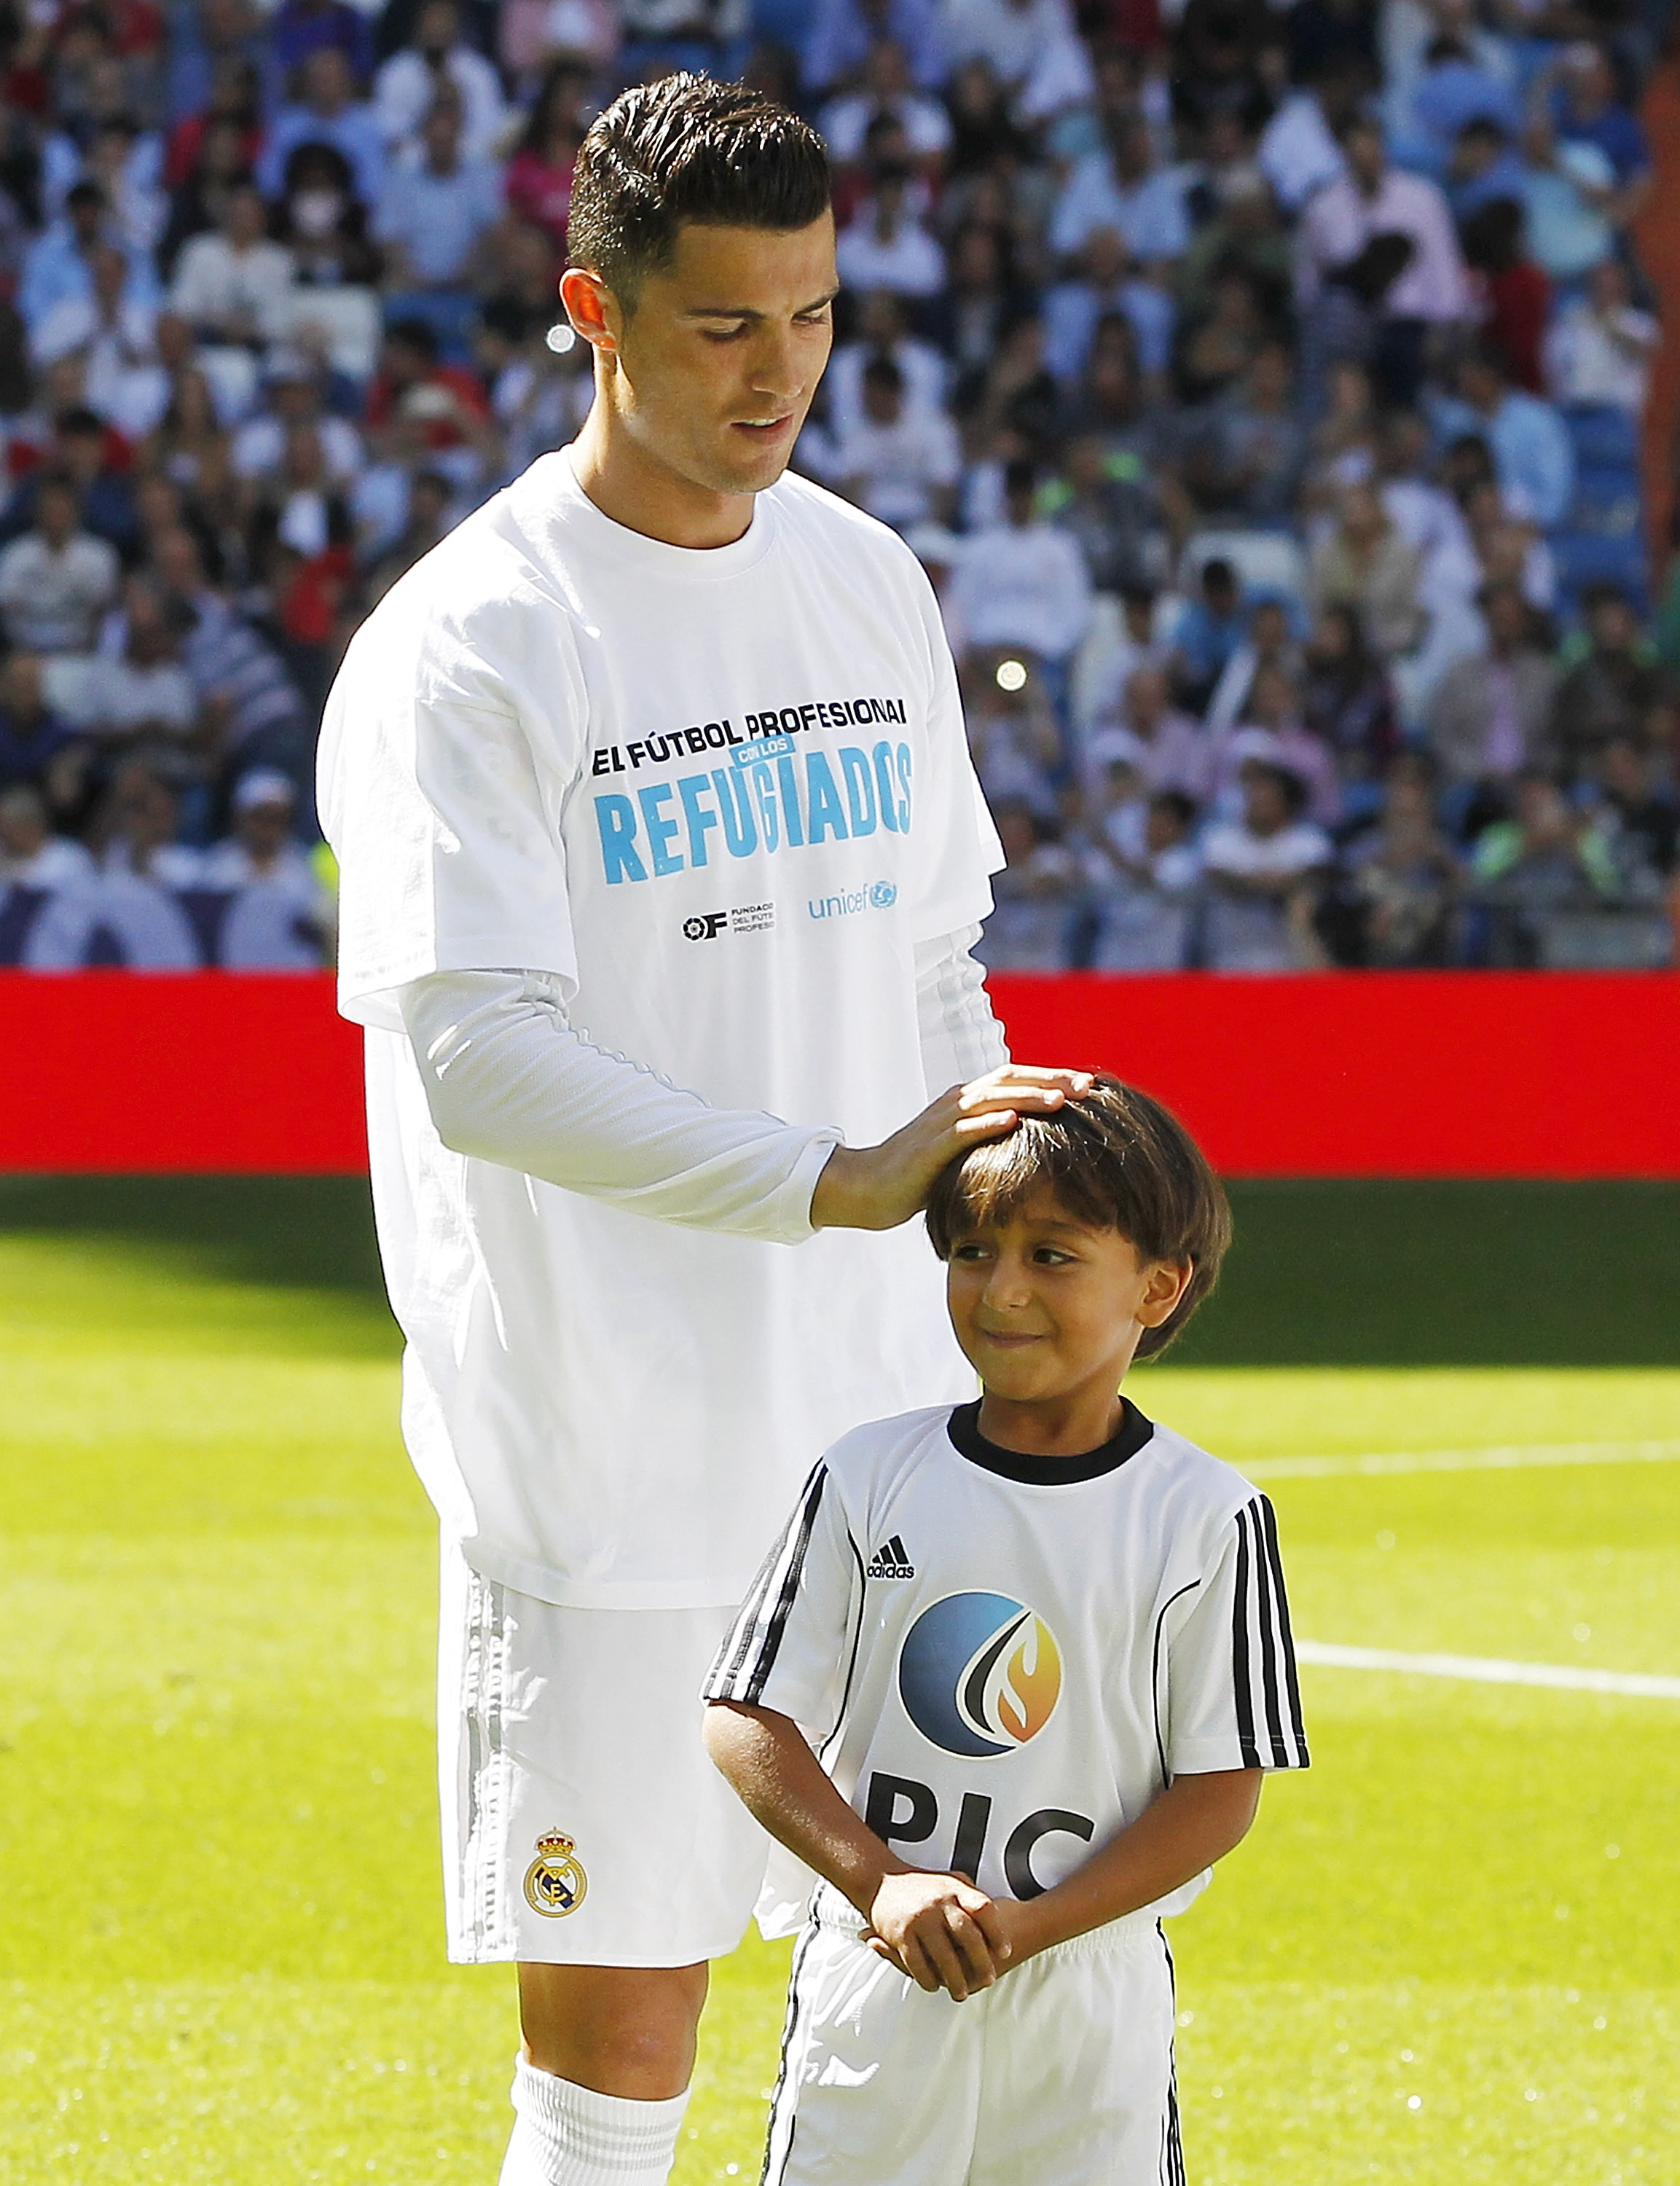 Zaid, son of Osama Abdul Mohsen, the Syrian refugee who was tripped over by a Hungarian journalist, pose with Cristiano Ronaldo of Real Madrid before the La Liga match between Real Madrid CF and Granada CF at Estadio Santiago Bernabeu on Sept. 19, 2015 in Madrid, Spain.